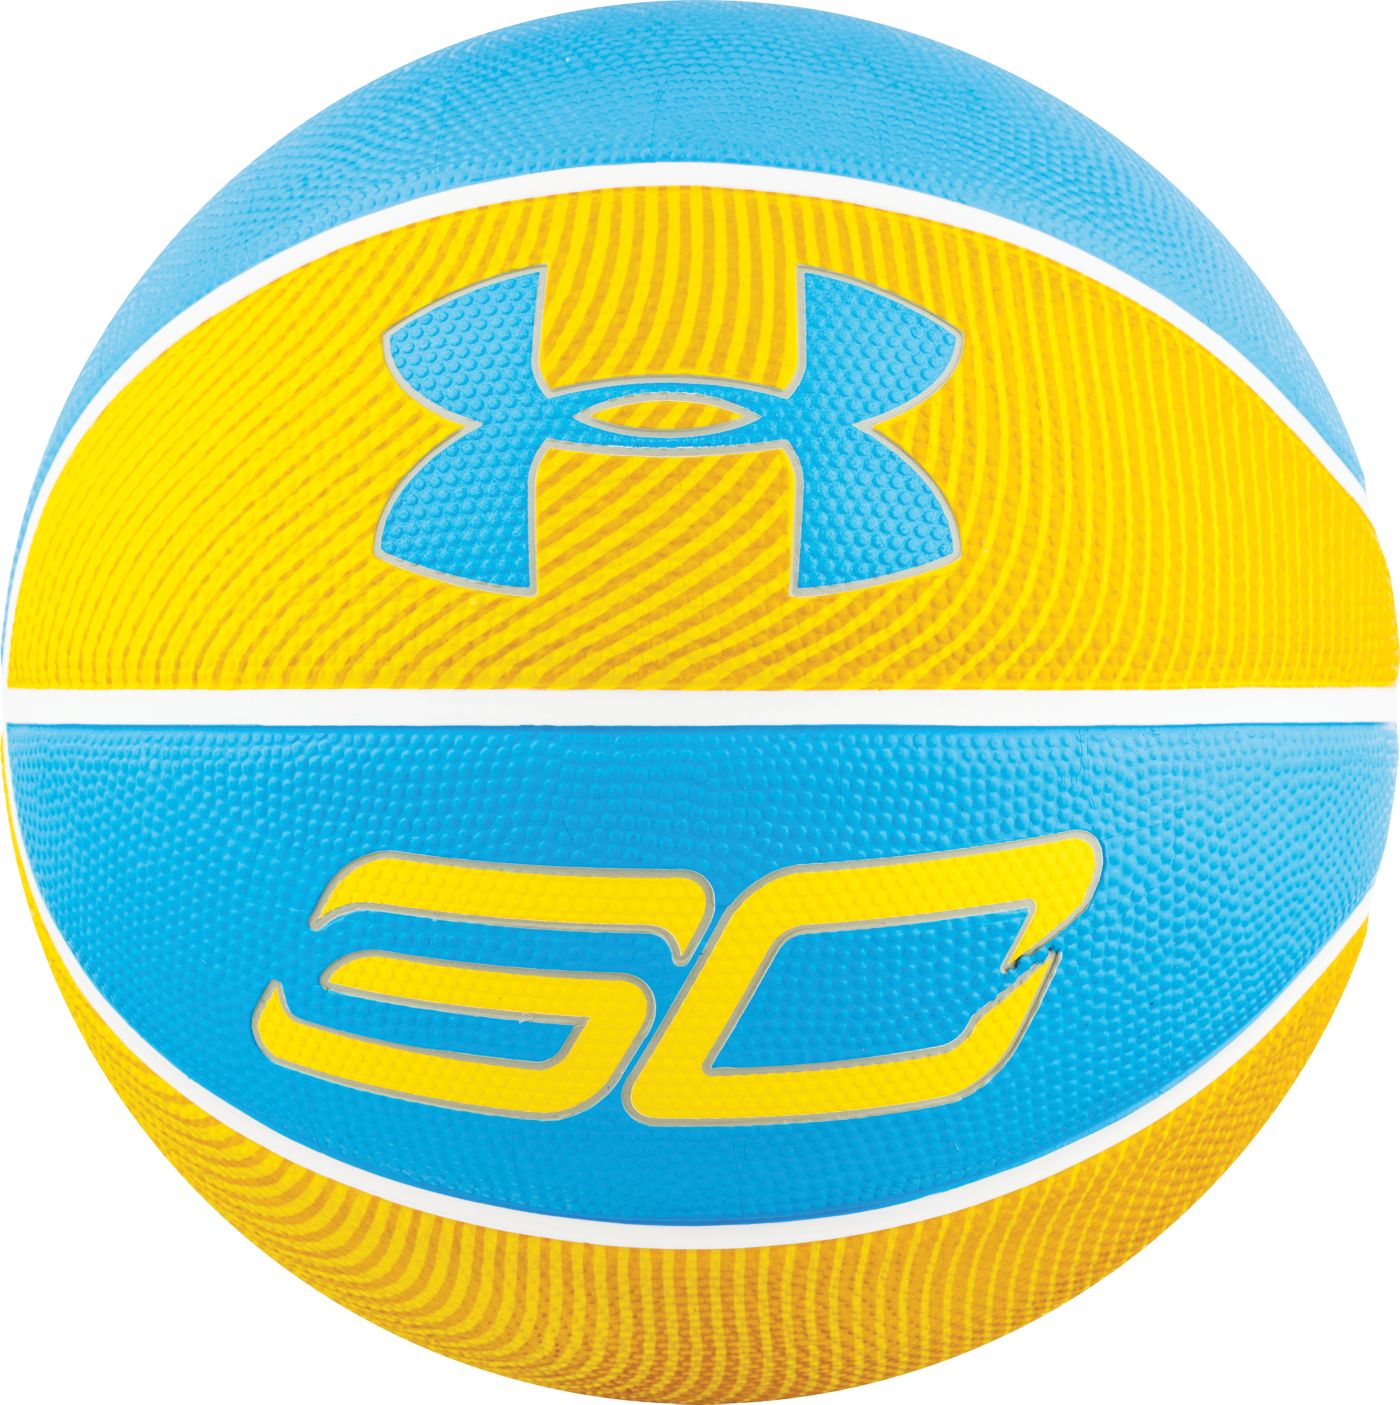 "Under Armour Stephen Curry Official Basketball (29.5"")"